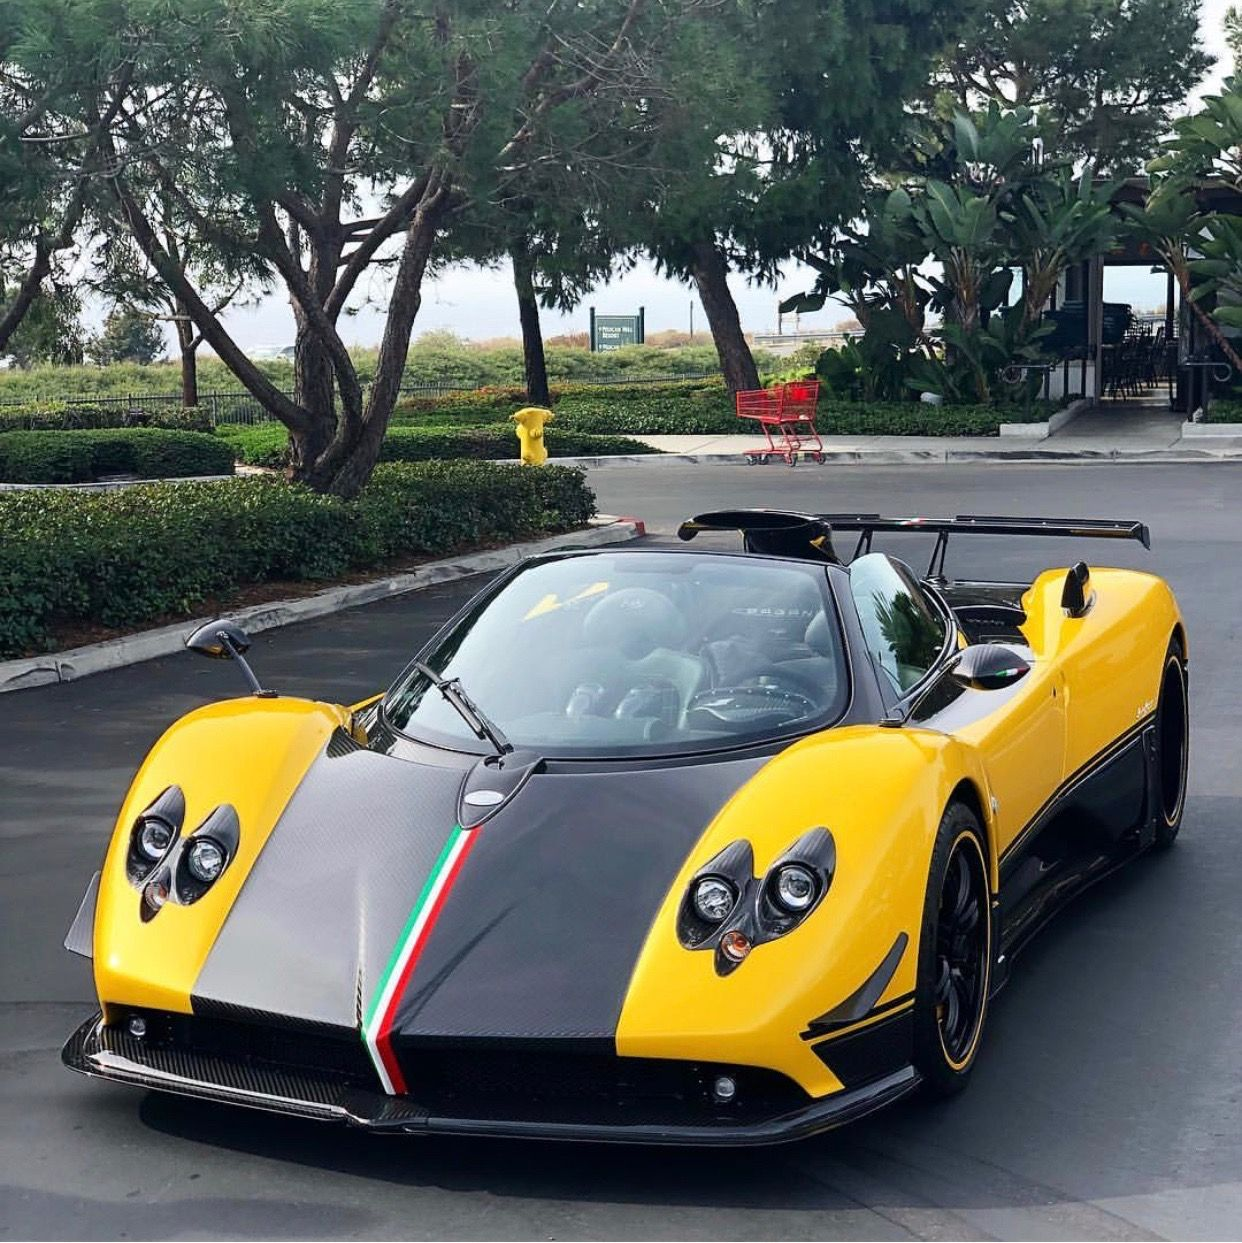 Pagani Zonda Cinque Roadster Painted In Giallo W/ Exposed